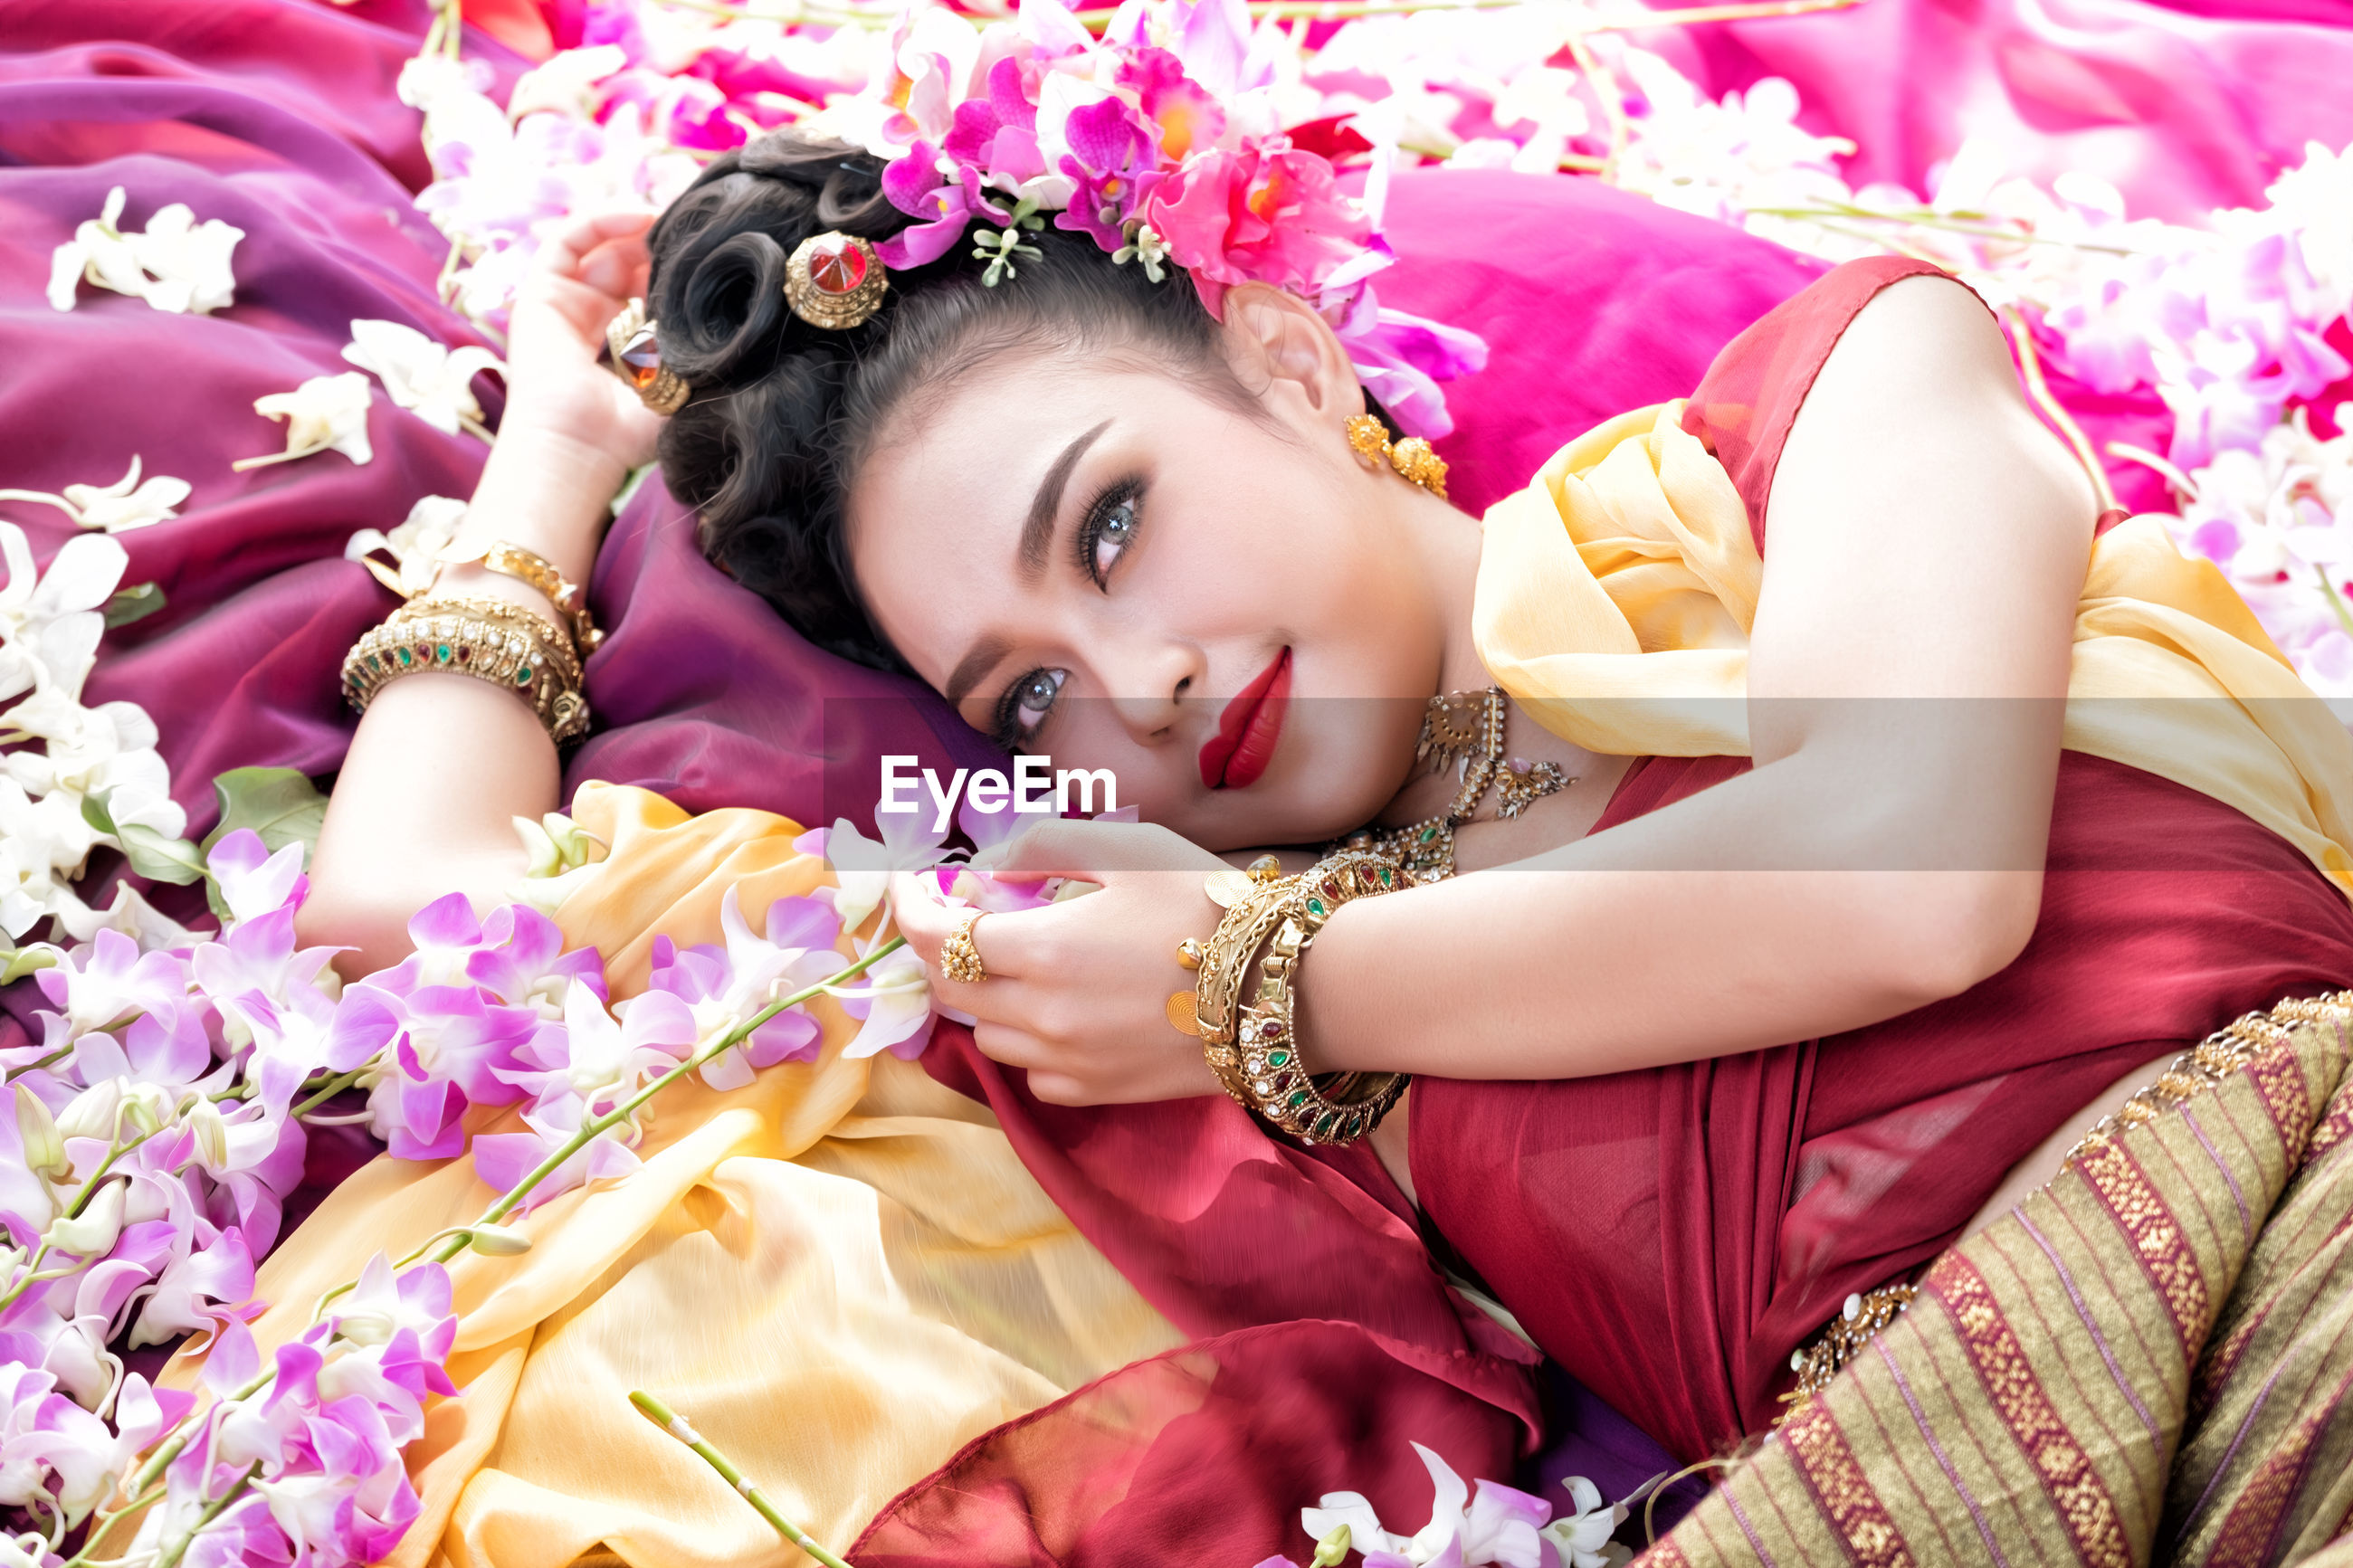 High angle view of beautiful woman wearing traditional clothing and jewelry while lying with flowers on bed